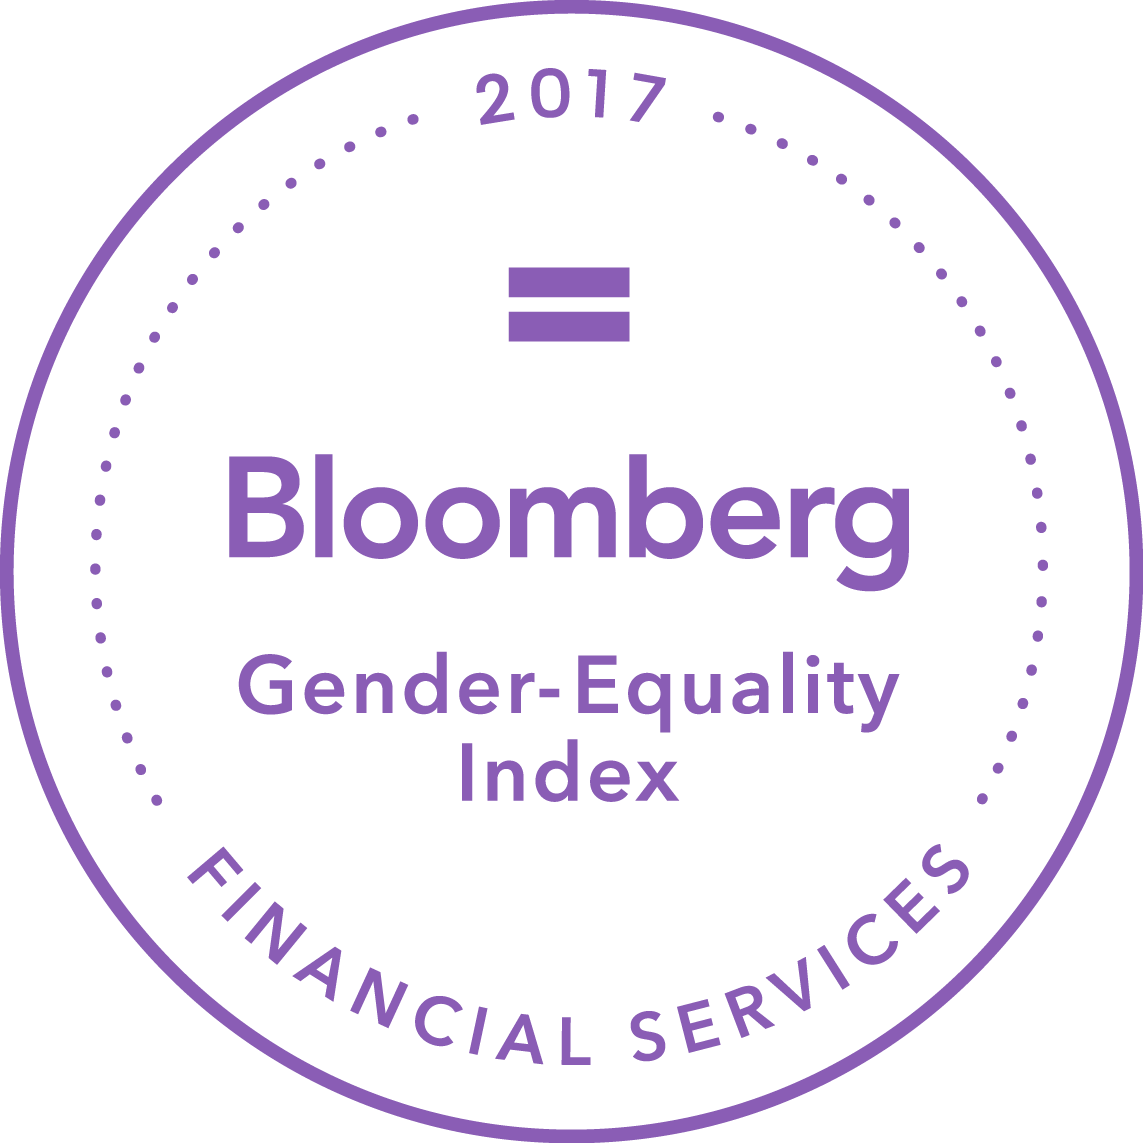 Bloomberg Gender-Equality Index 2017